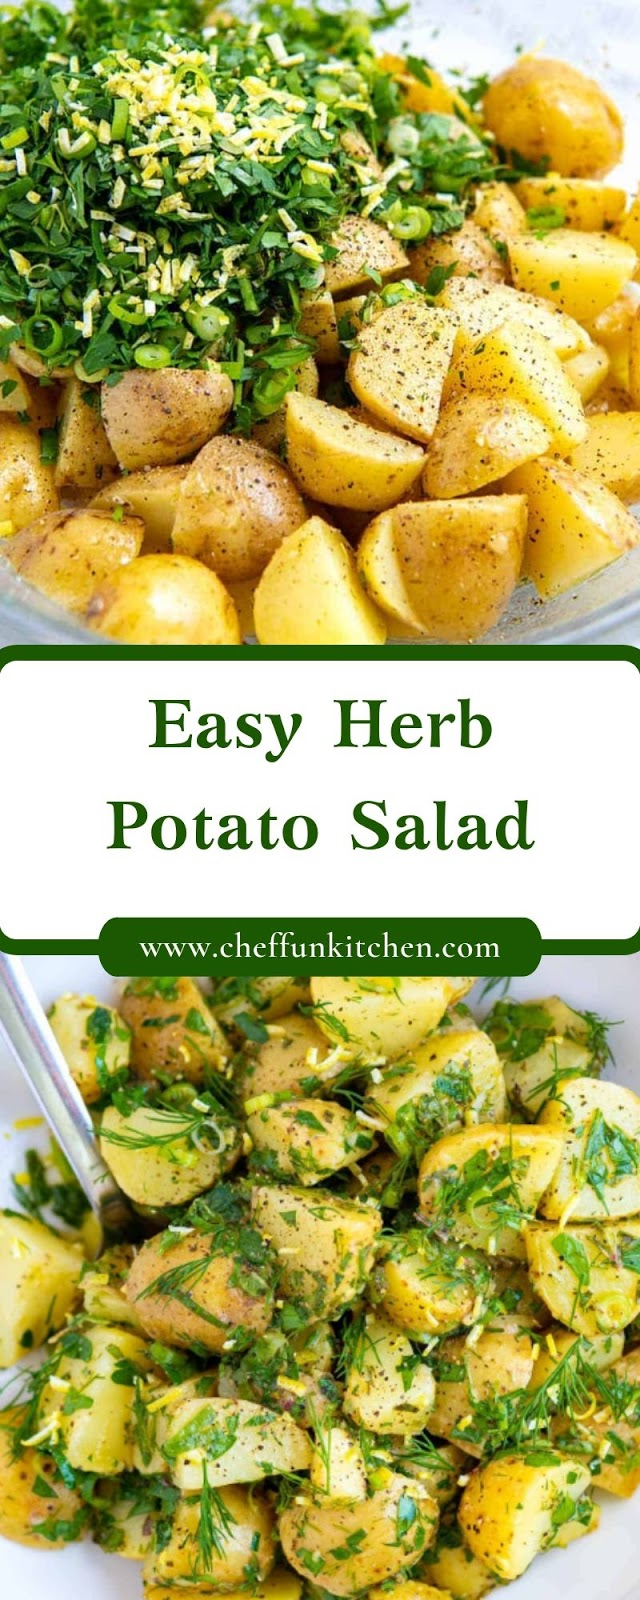 Easy Herb Potato Salad